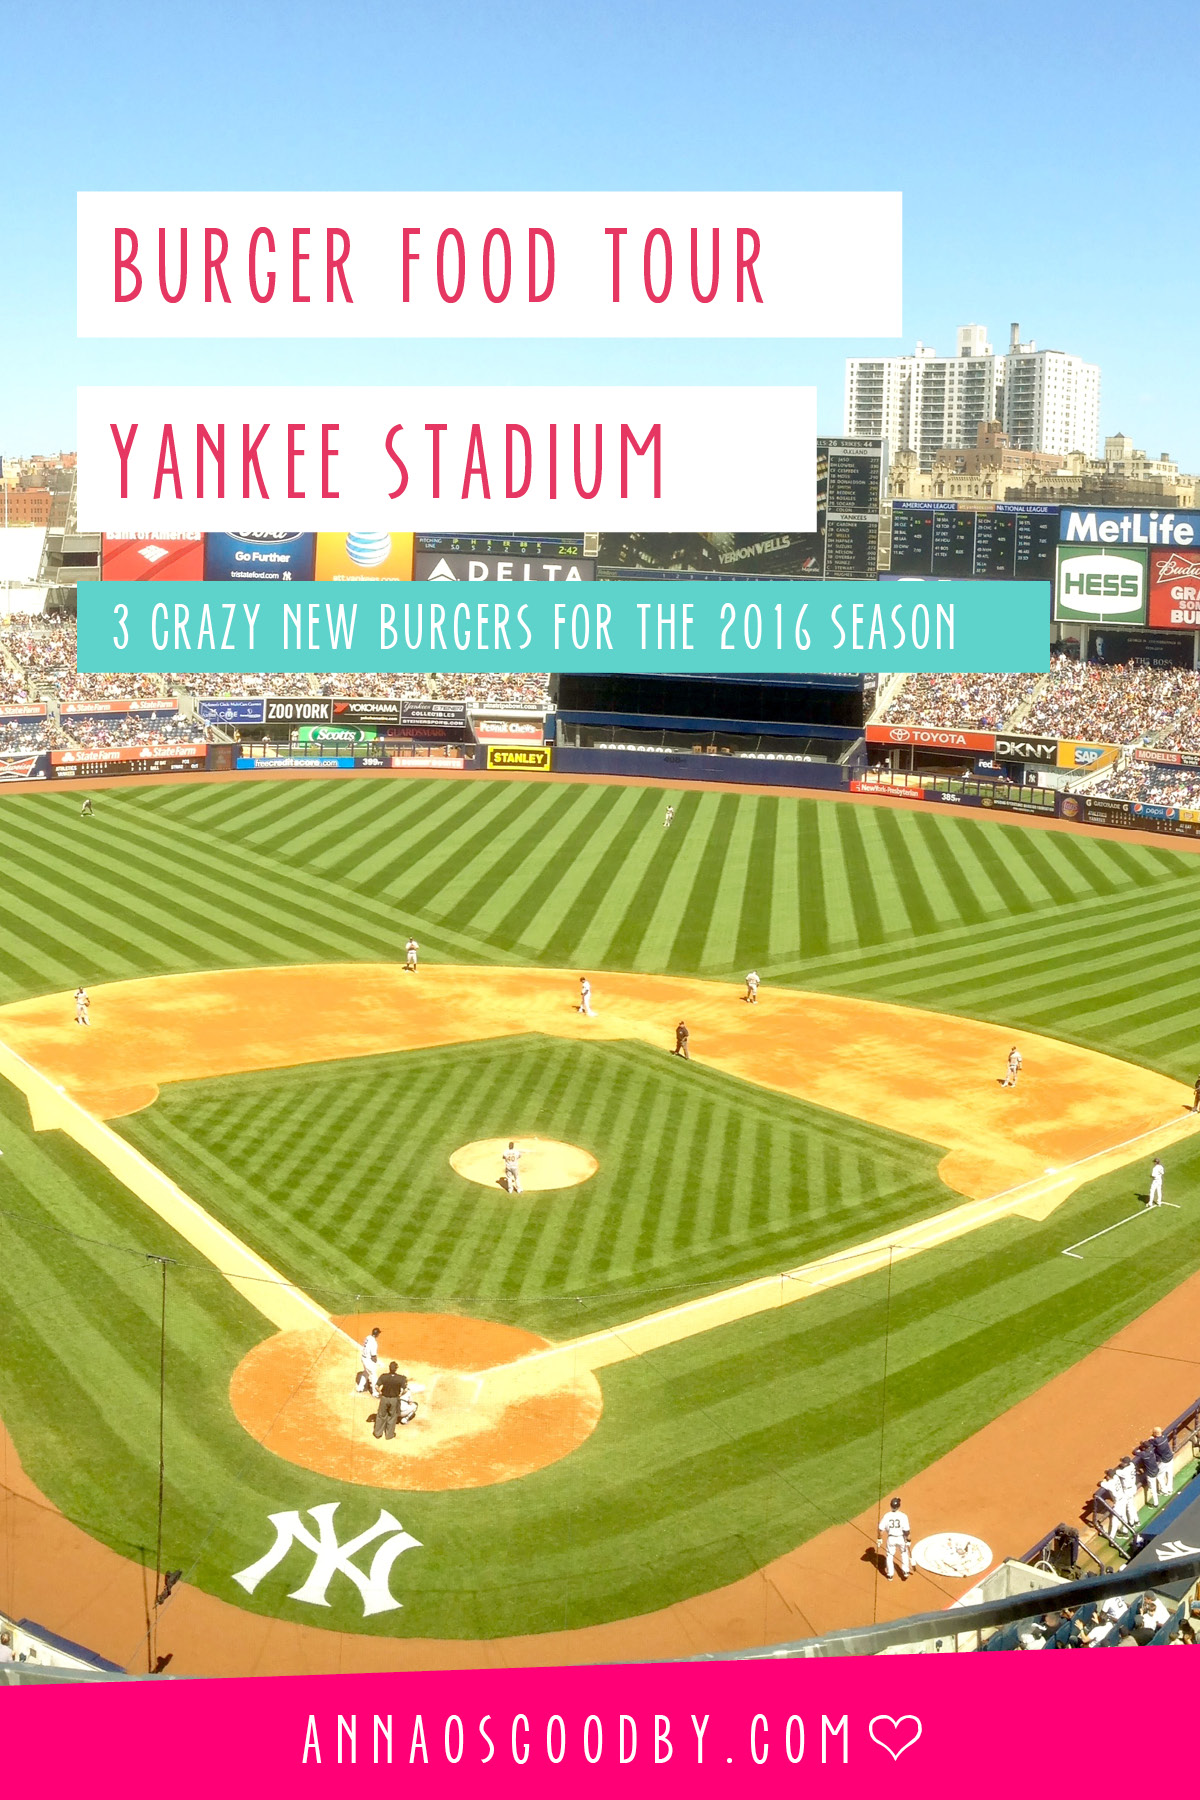 Anna Osgoodby NYC Living :: Yankee Stadium Goes Burger Crazy 3 New Burgers Available for the 2016 Season